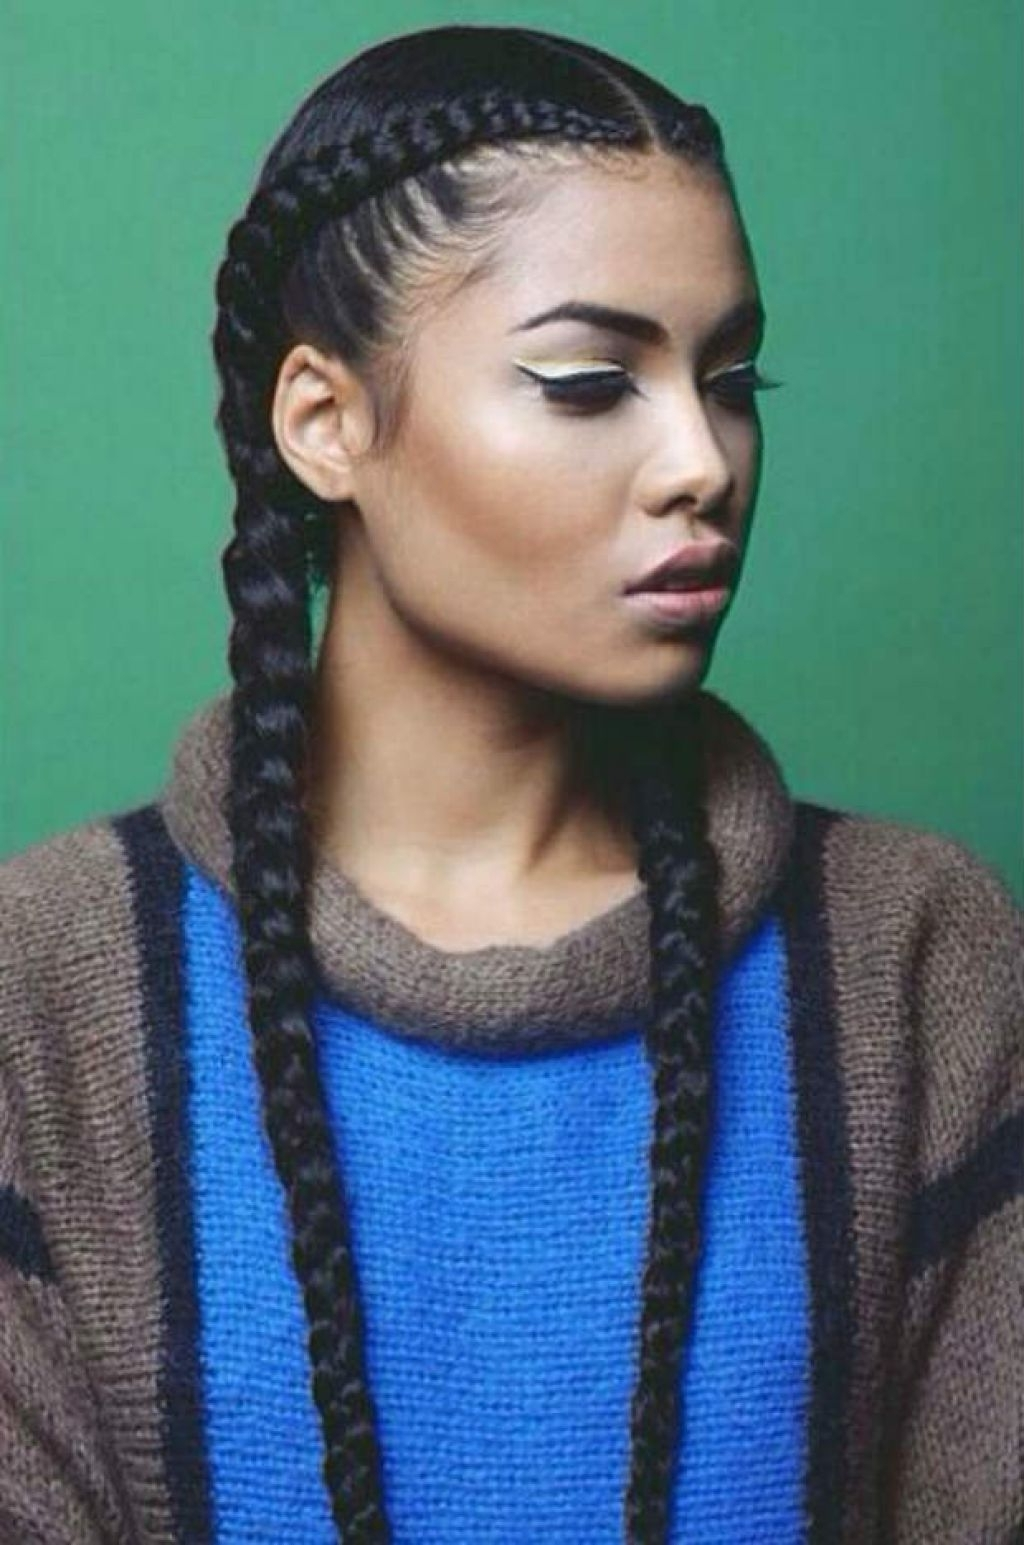 Two Braid Hairstyles – Cute Hairstyles For Girls With Braids Long In Well Liked Braided Hairstyles With Two Braids (View 12 of 15)